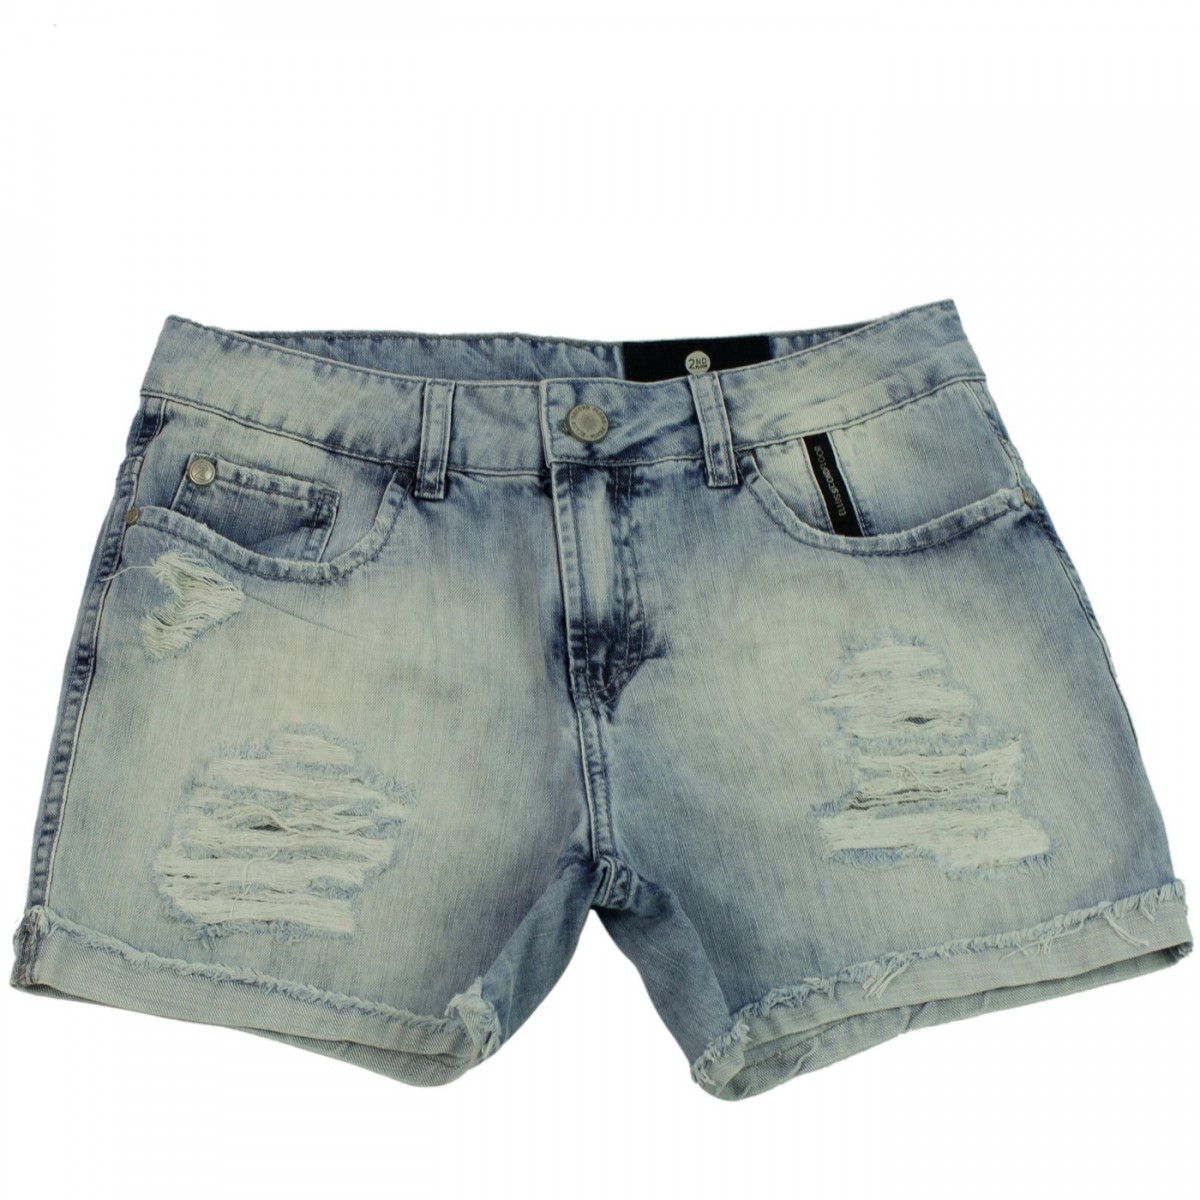 994292935 Imagem - Shorts Jeans Feminino Ellus Second Floor Destroyer 19sf451 - 052760